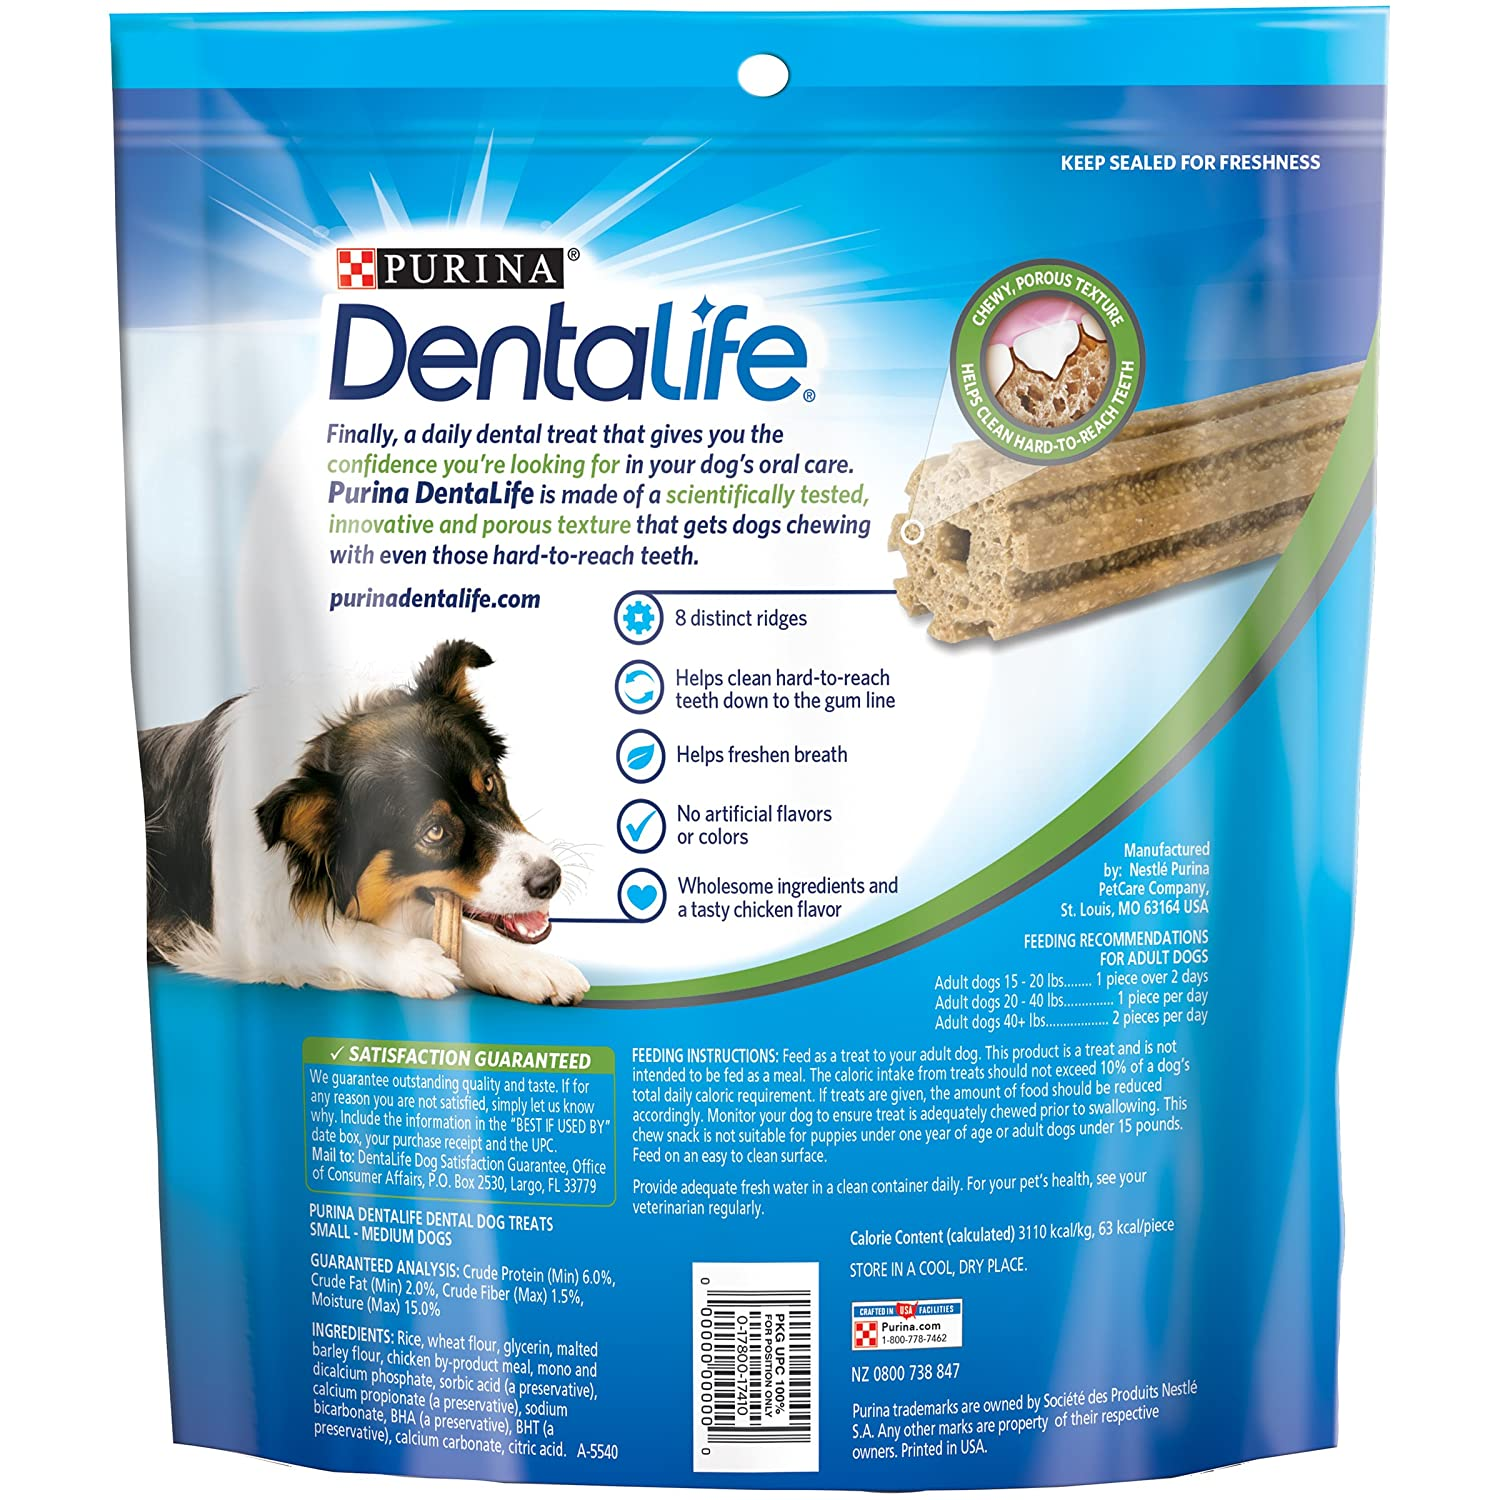 Amazon purina dentalife daily oral care smallmedium adult dog amazon purina dentalife daily oral care smallmedium adult dog treats 1 285 oz 40 ct pouch pet supplies publicscrutiny Image collections